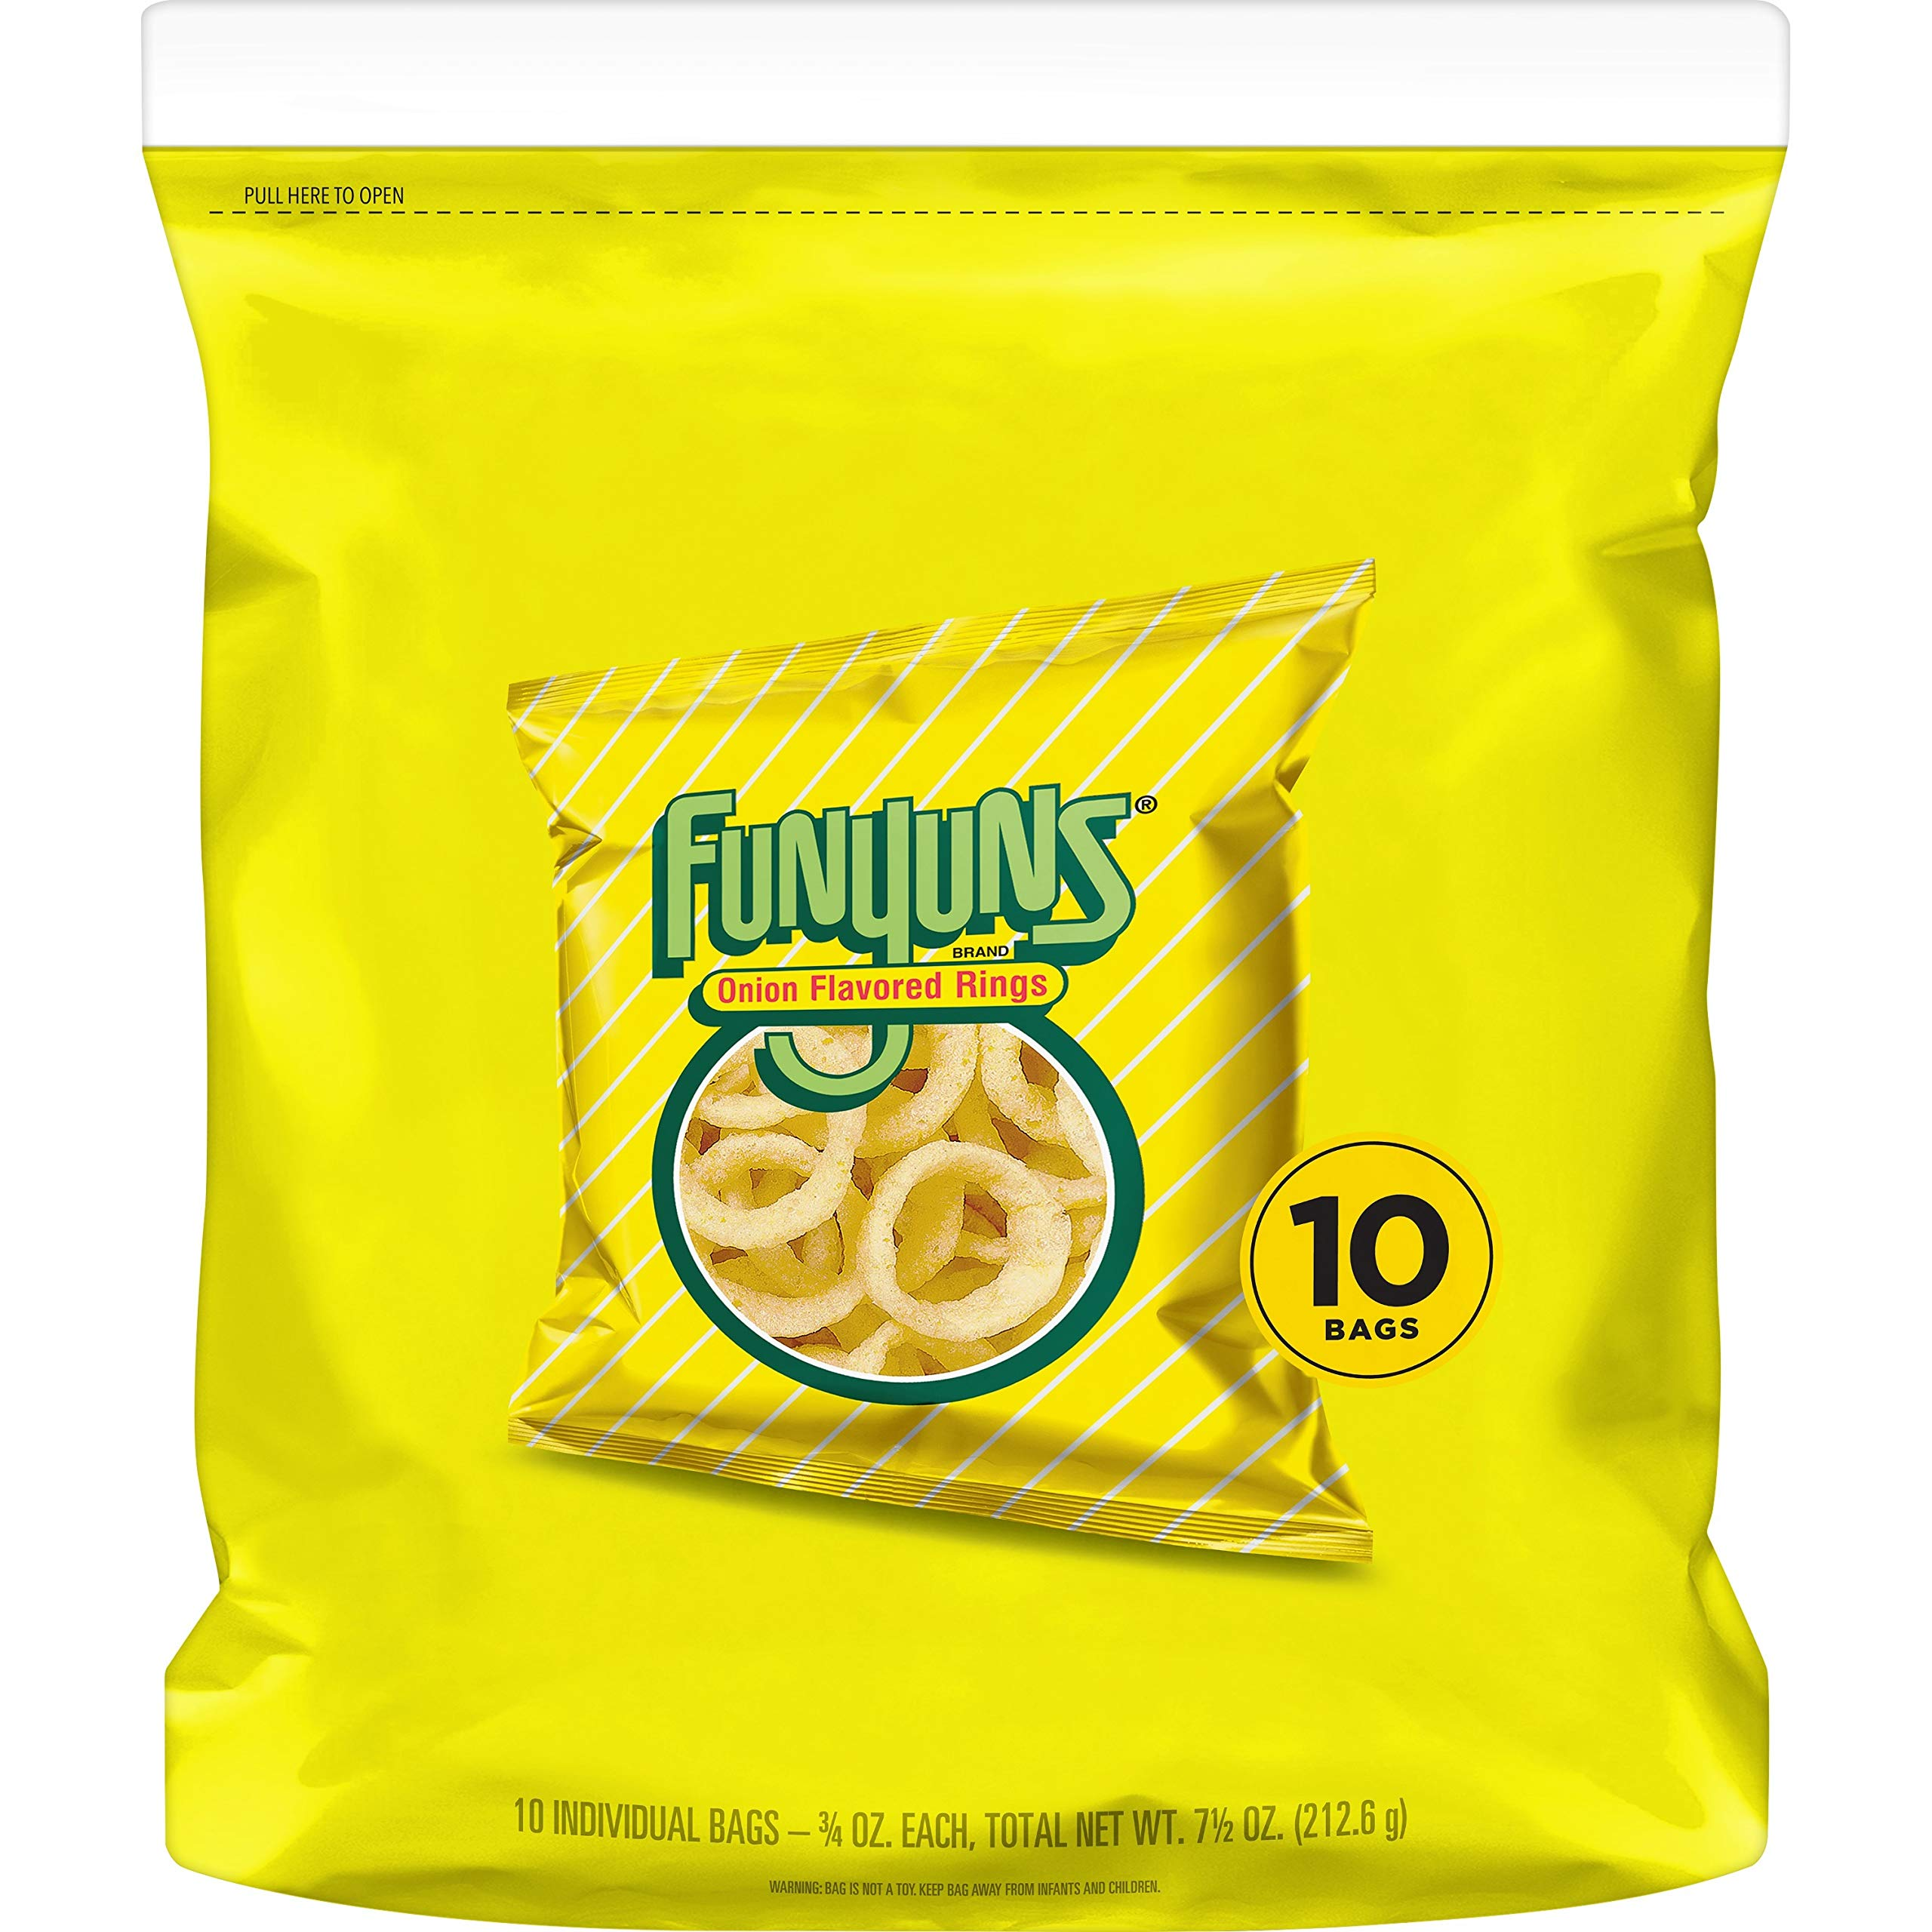 Funyuns Onion Flavored Rings, 0.75oz Bags 10 count